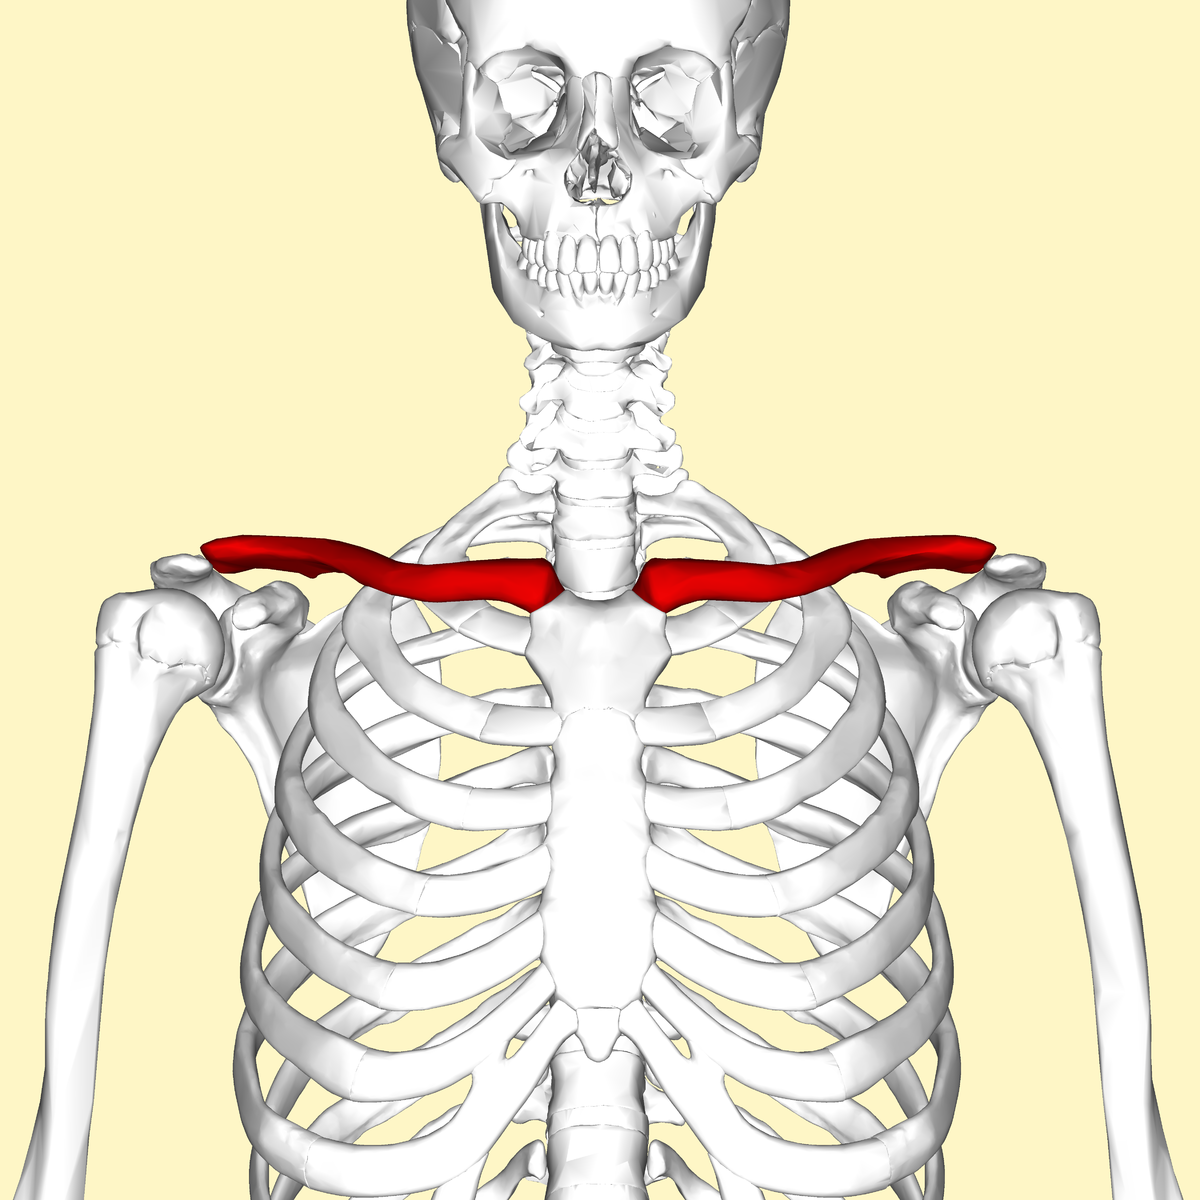 Anatomy of the collarbone